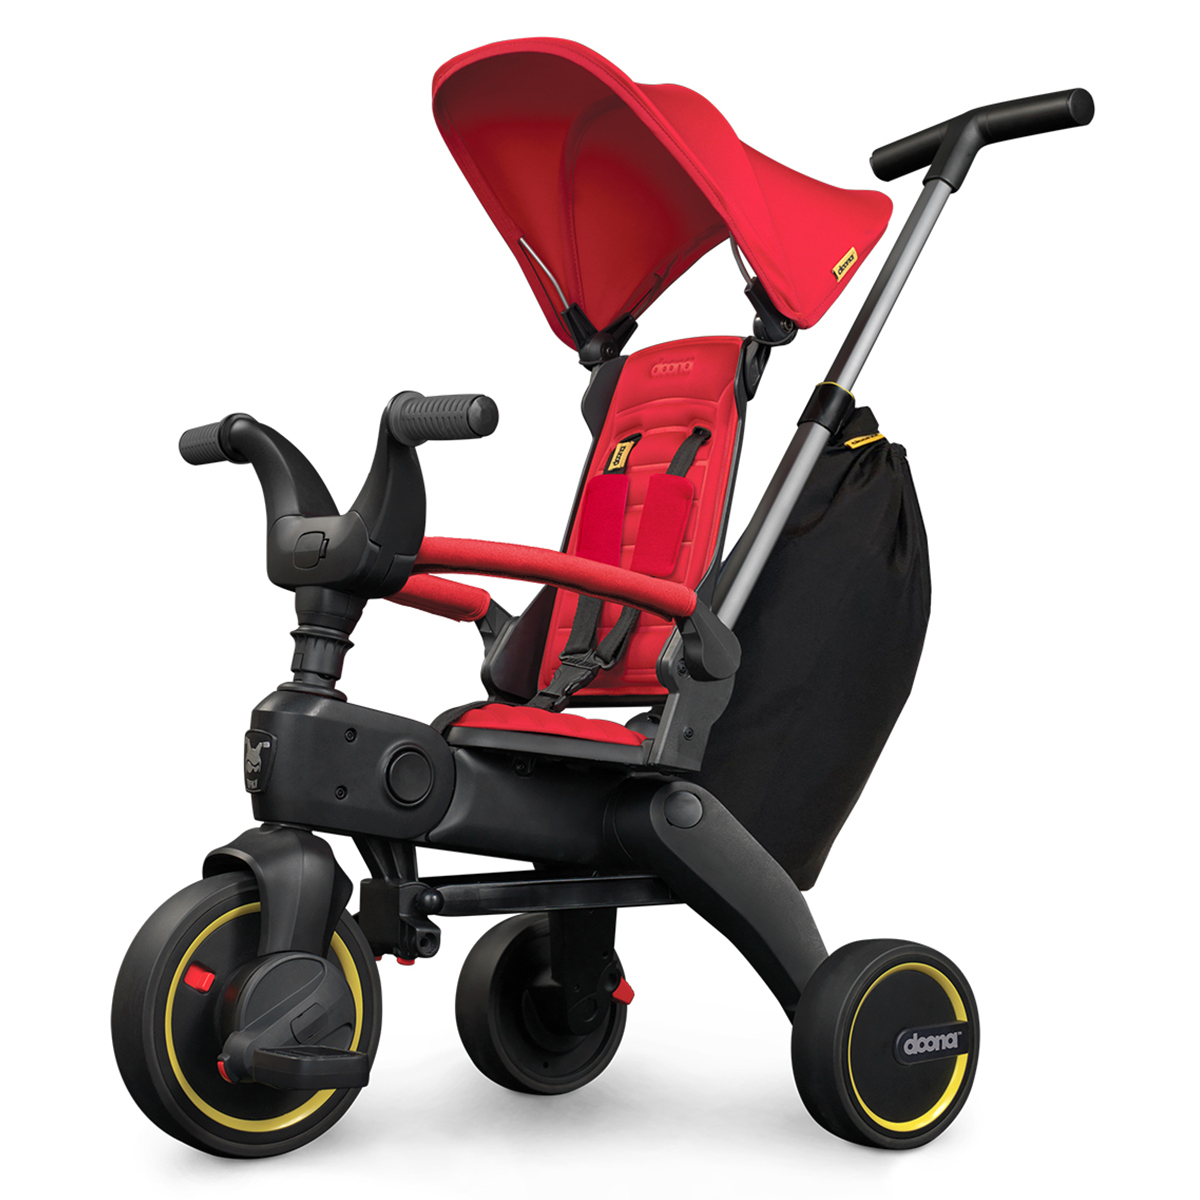 Trotteur & Porteur Tricycle Evolutif Compact Liki Trike S3 - Rouge Tricycle Evolutif Compact Liki Trike S3 - Rouge